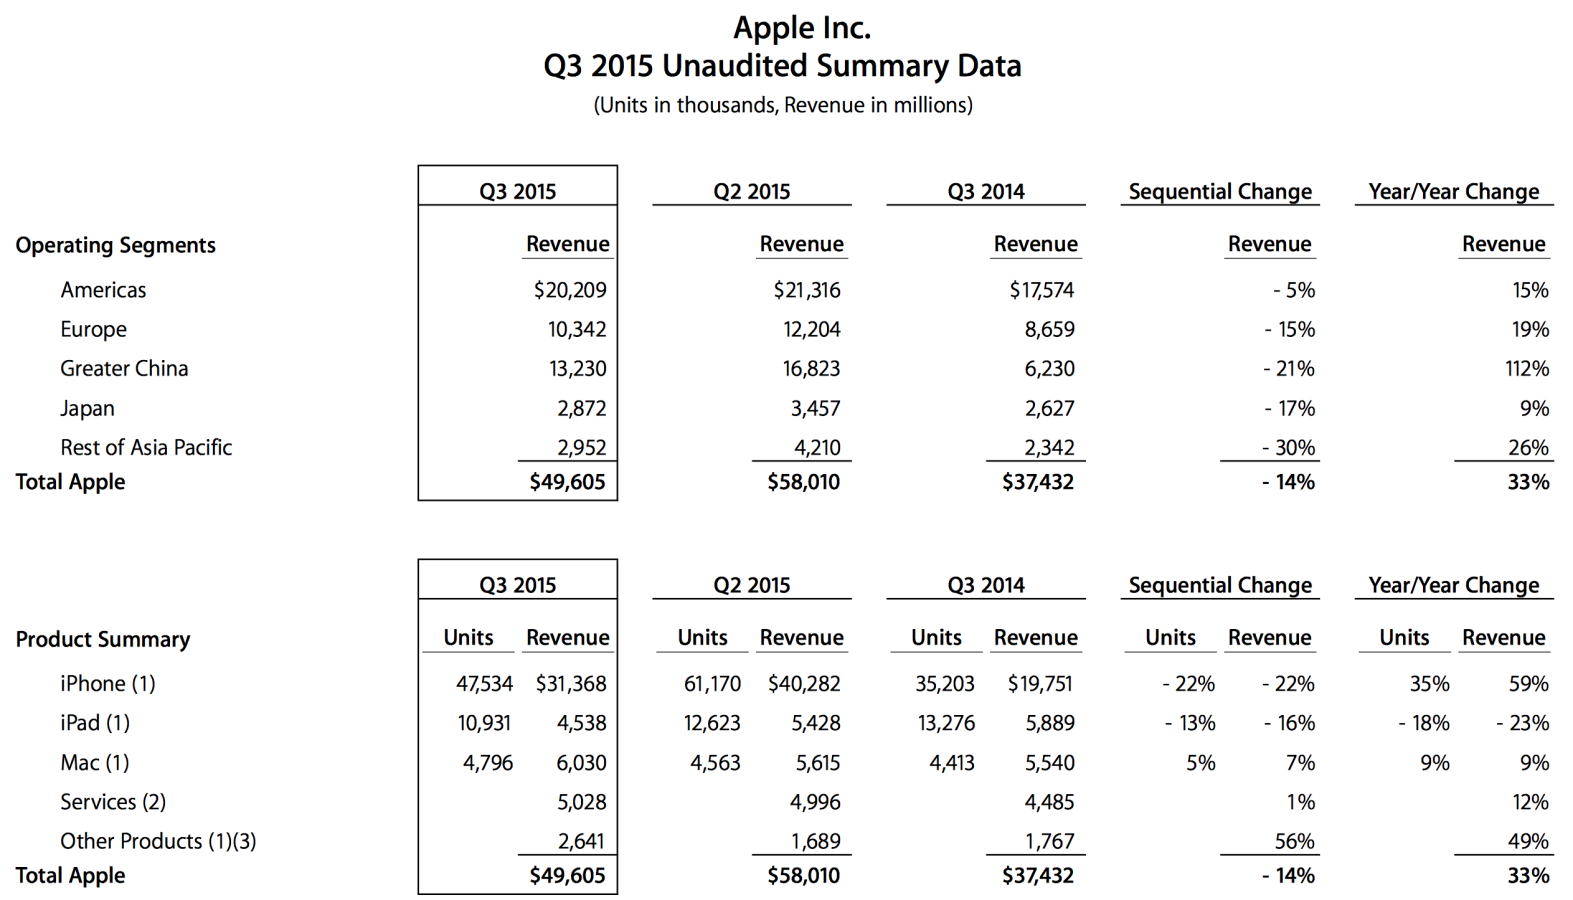 Apple Q3 2015 Data